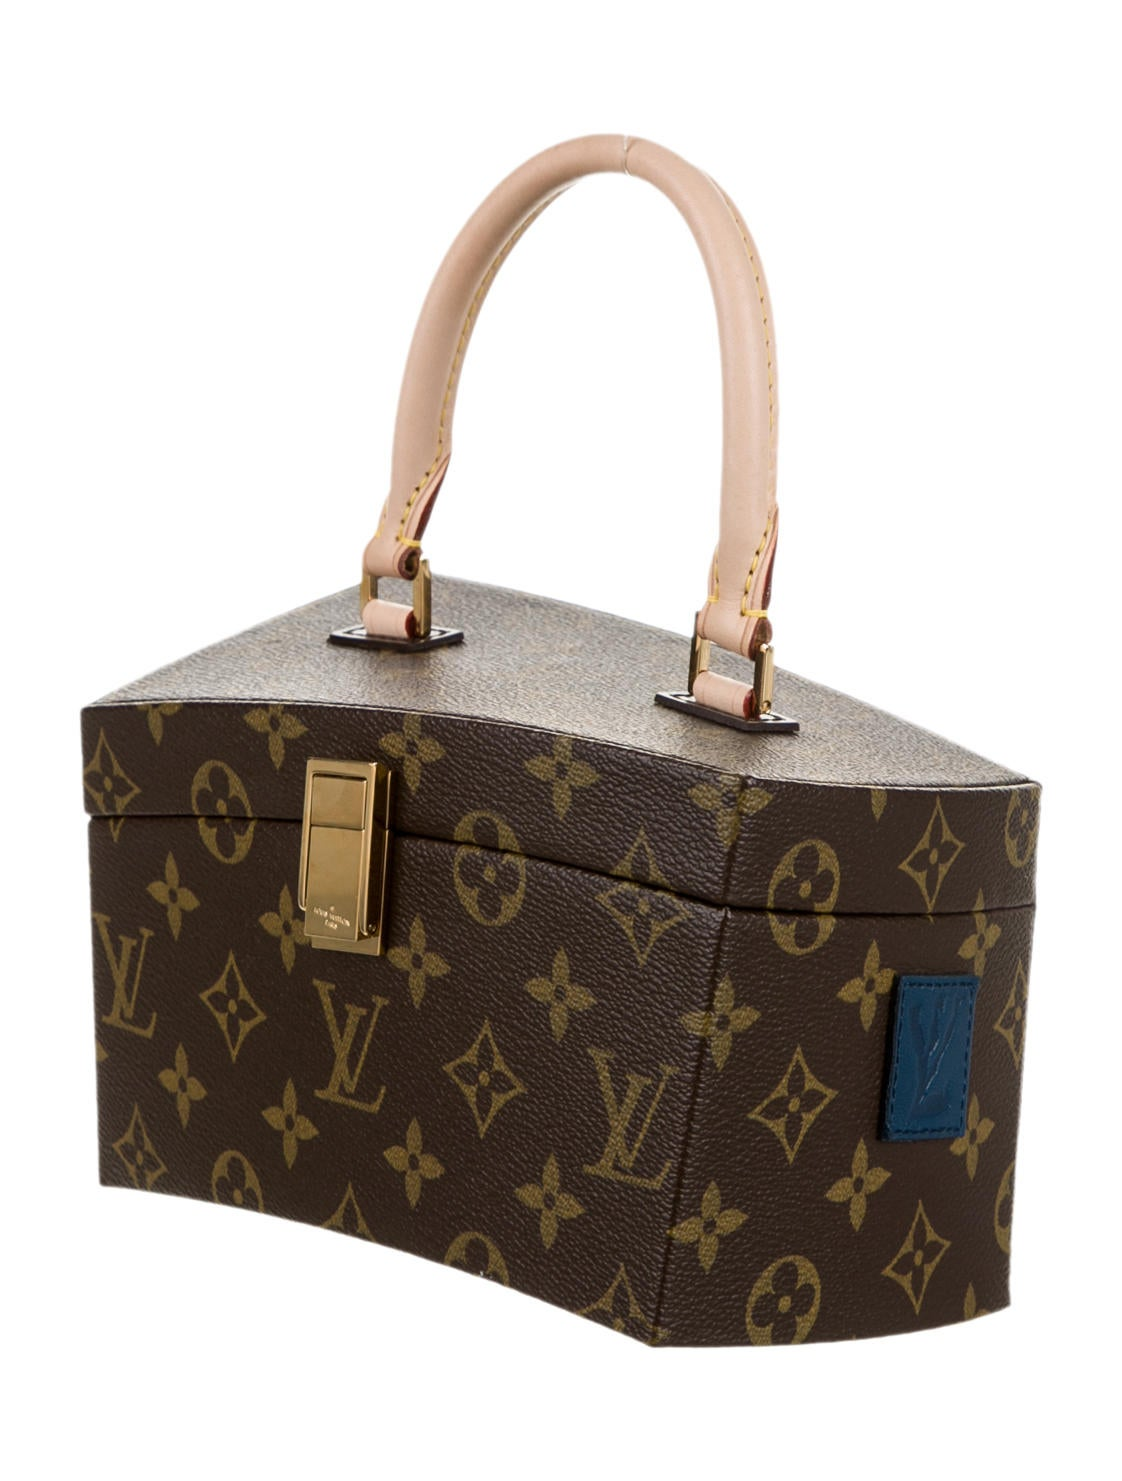 Louis vuitton twisted box frank gehry handbags lou47115 the realreal - Frank gehry louis vuitton ...